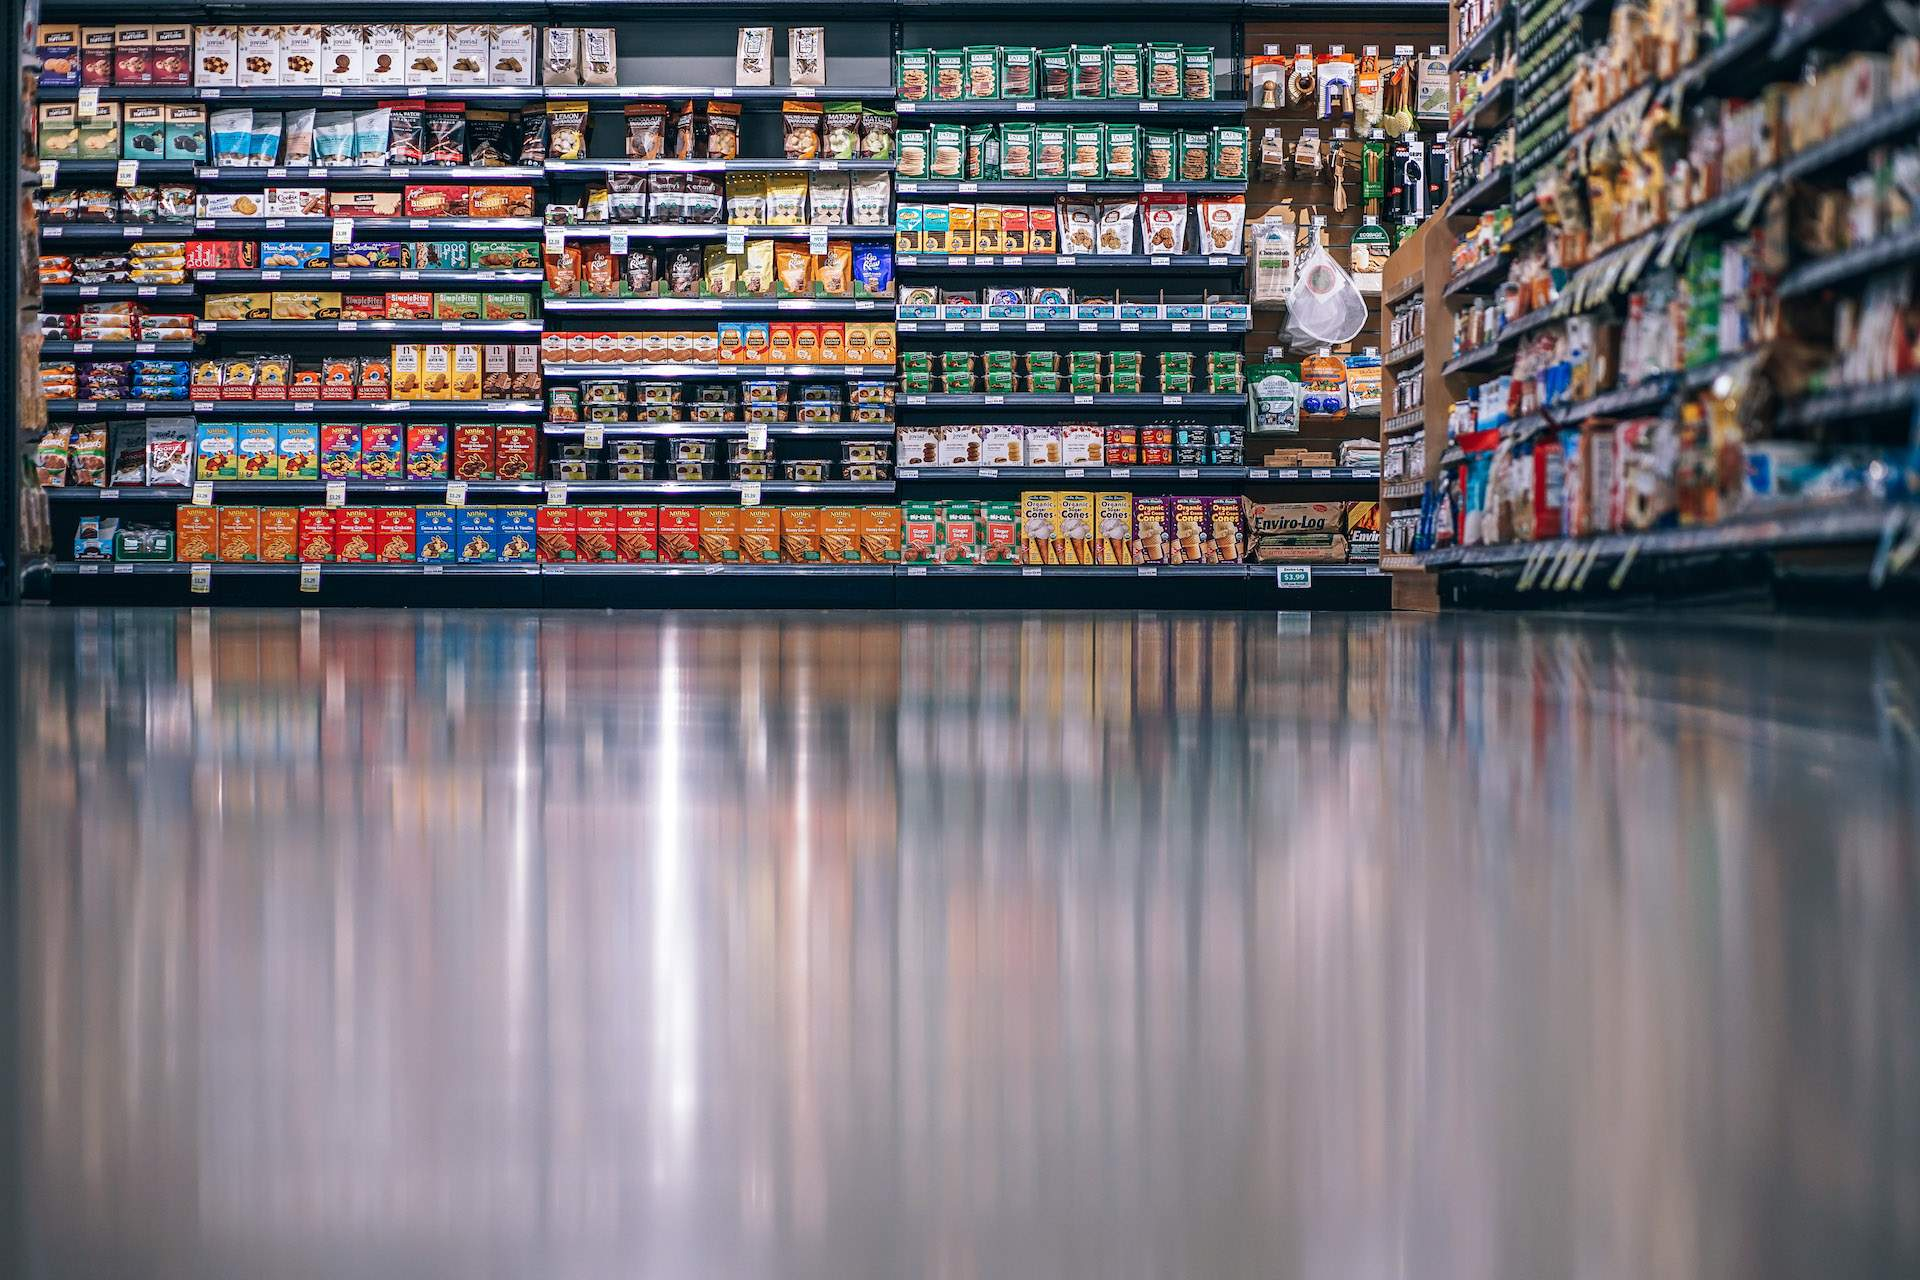 Netherlands Supermarket Ekoplaza Has Launched a World-First Plastic-Free Aisle